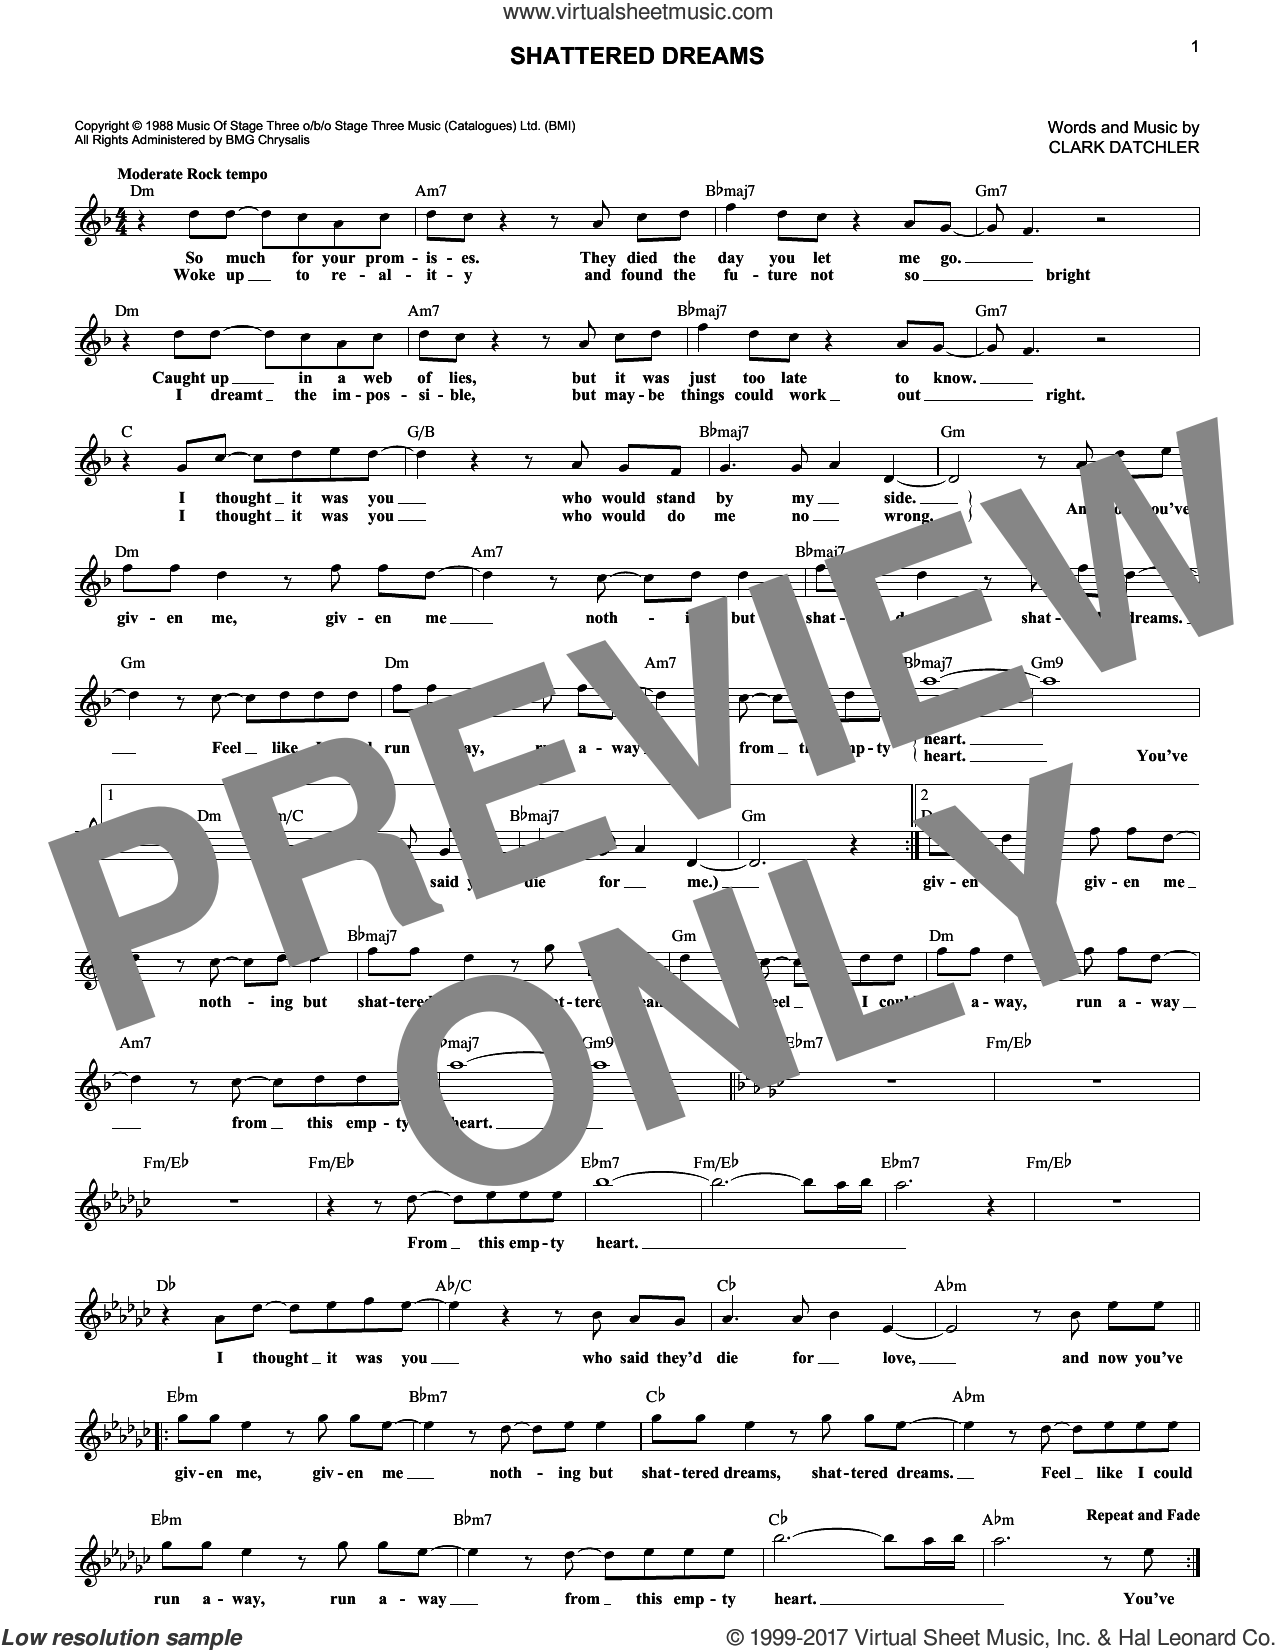 Shattered Dreams sheet music for voice and other instruments (fake book) by Johnny Hates Jazz and Clark Datchler, intermediate